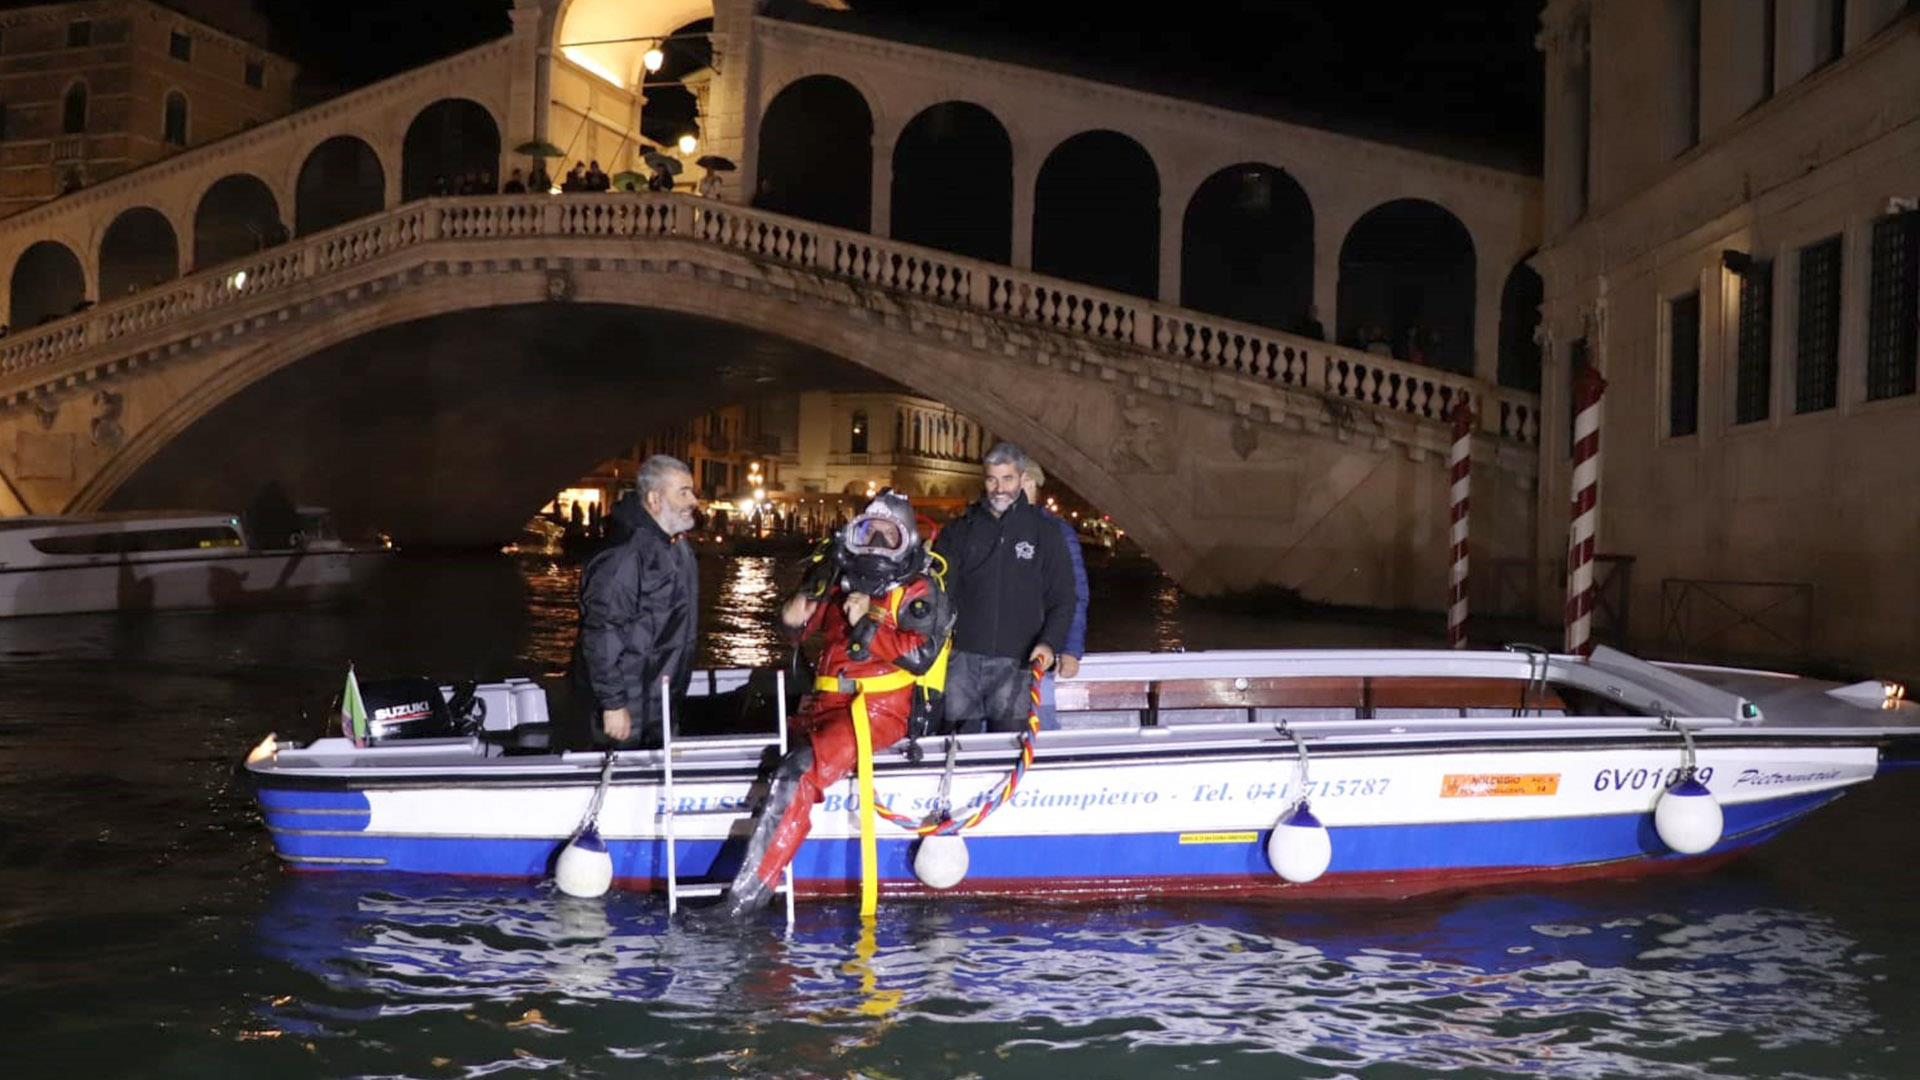 Gondoliers-turned-divers scour famed Venice lagoon and canals for trash